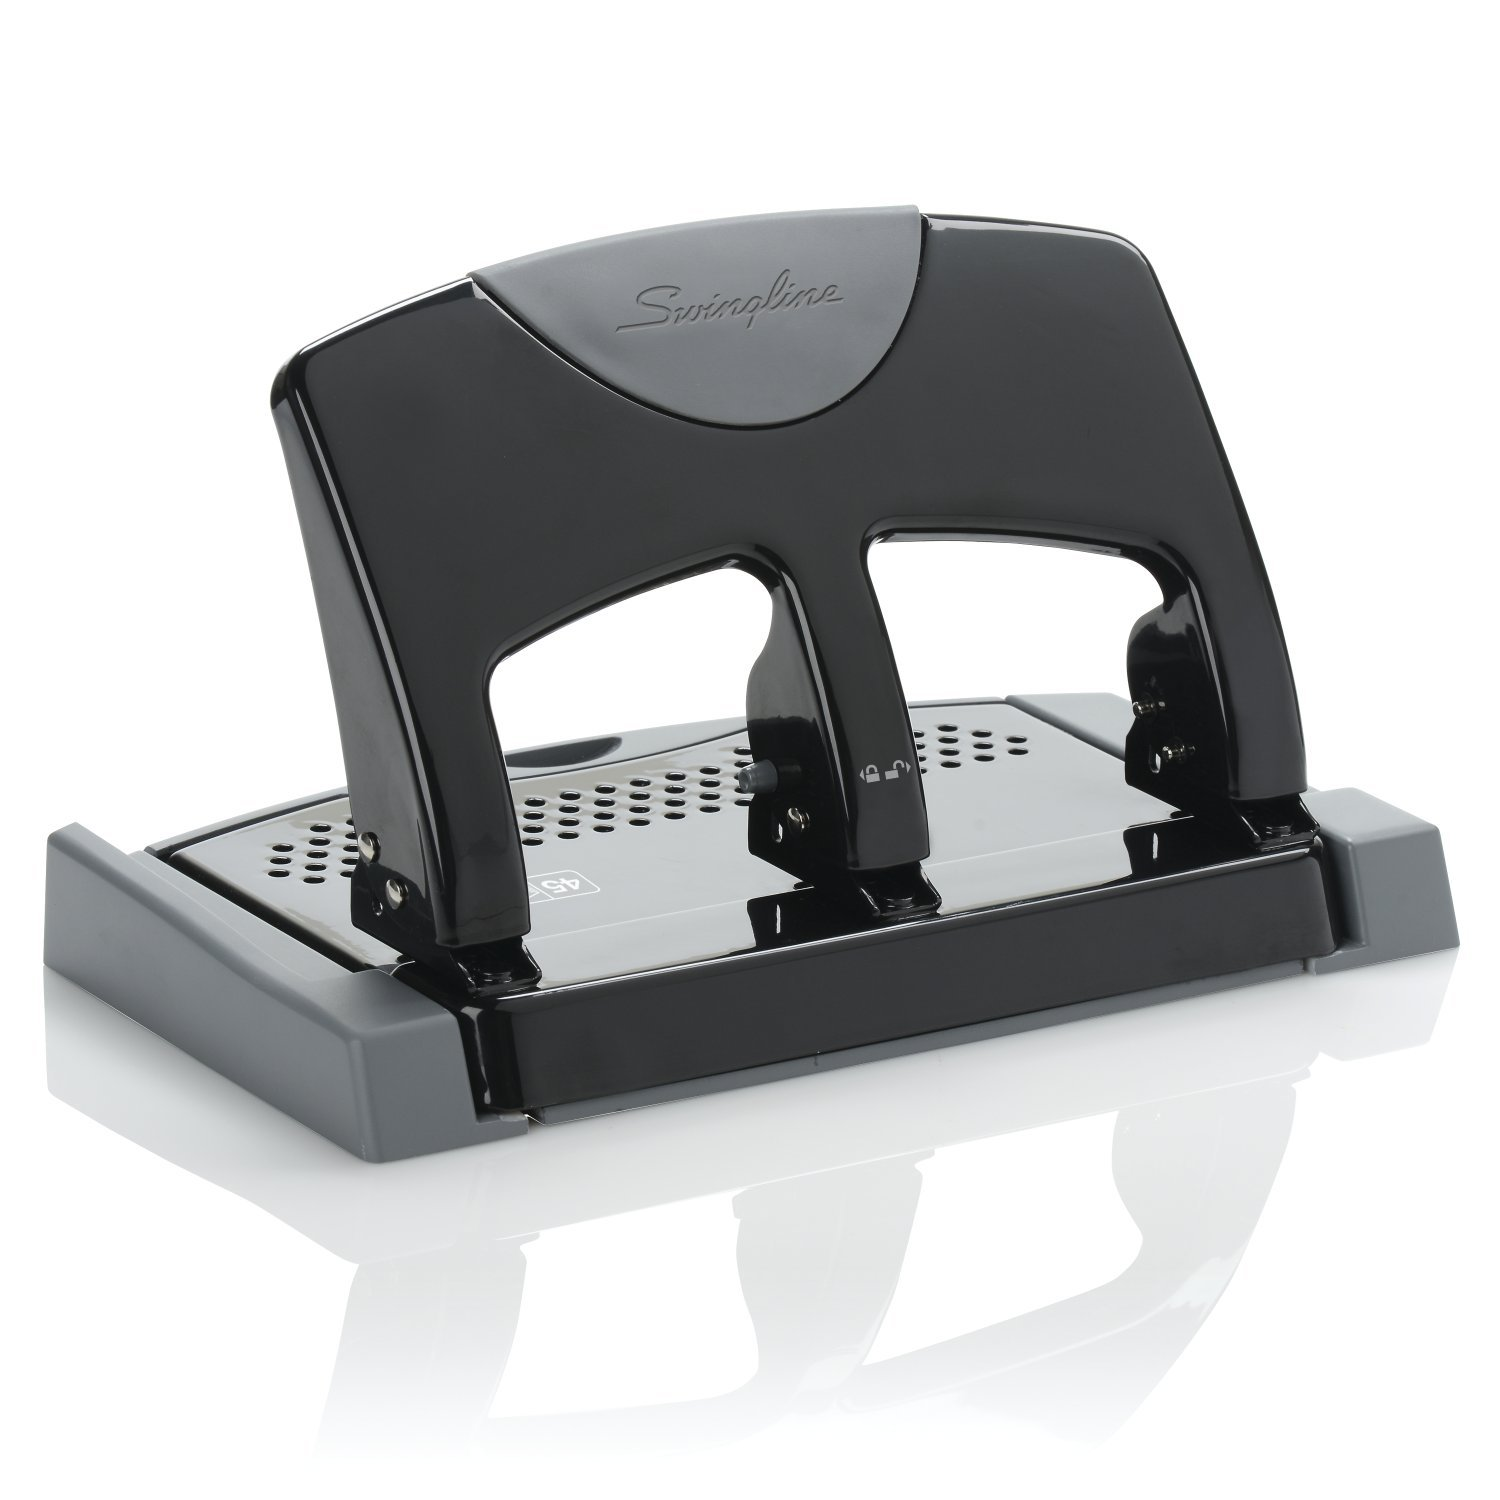 Staples One-Touch 26614 Heavy-Duty 3-Hole Punch 30-Sheet Capacity Black 884279